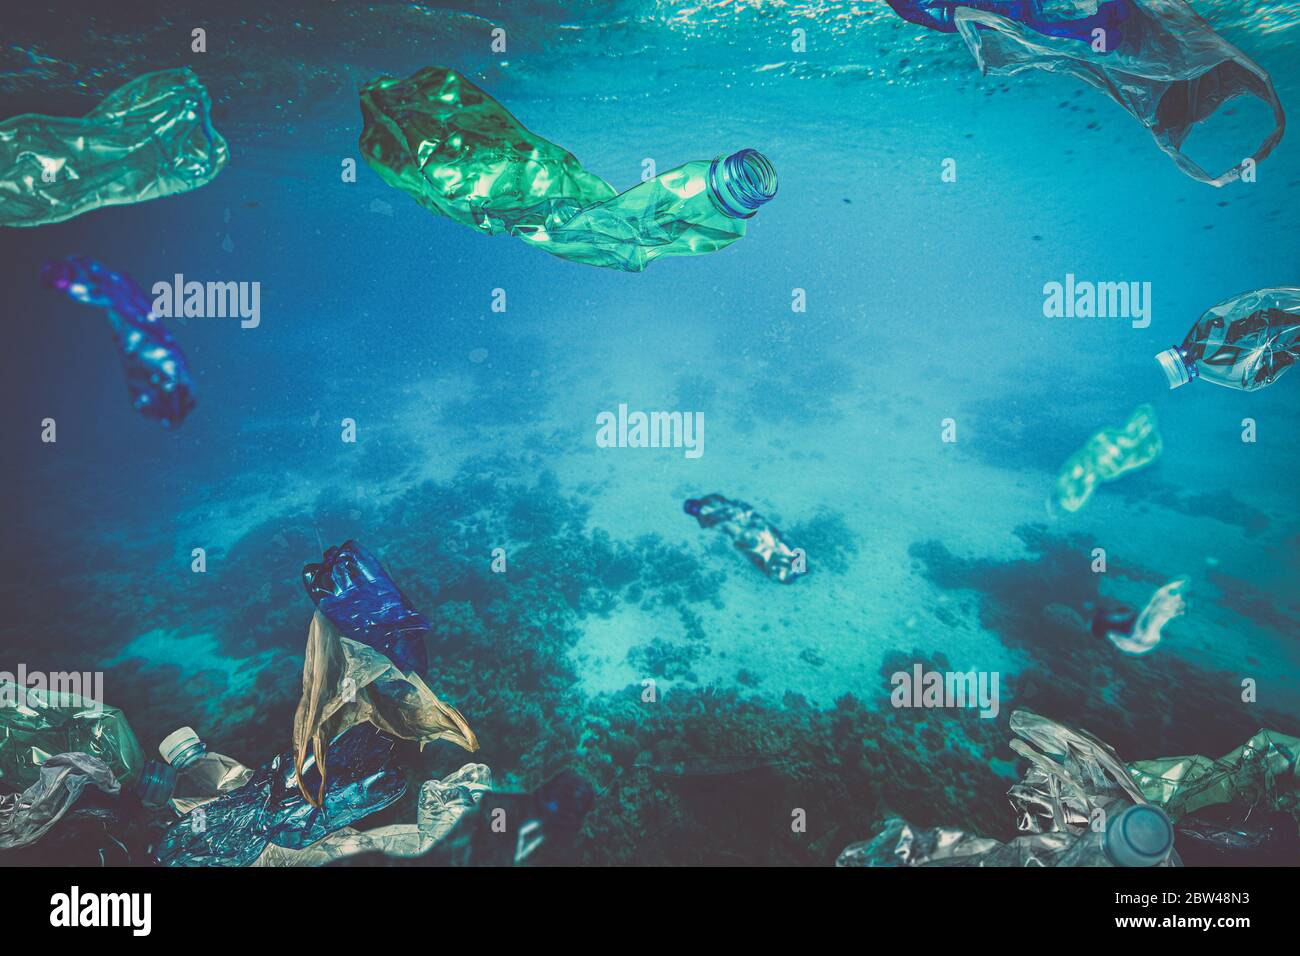 plastic waste, bottle bags floating underwater in the sea. no one around, concept of ecological disaster and problem in the disposal of plastic. Stock Photo